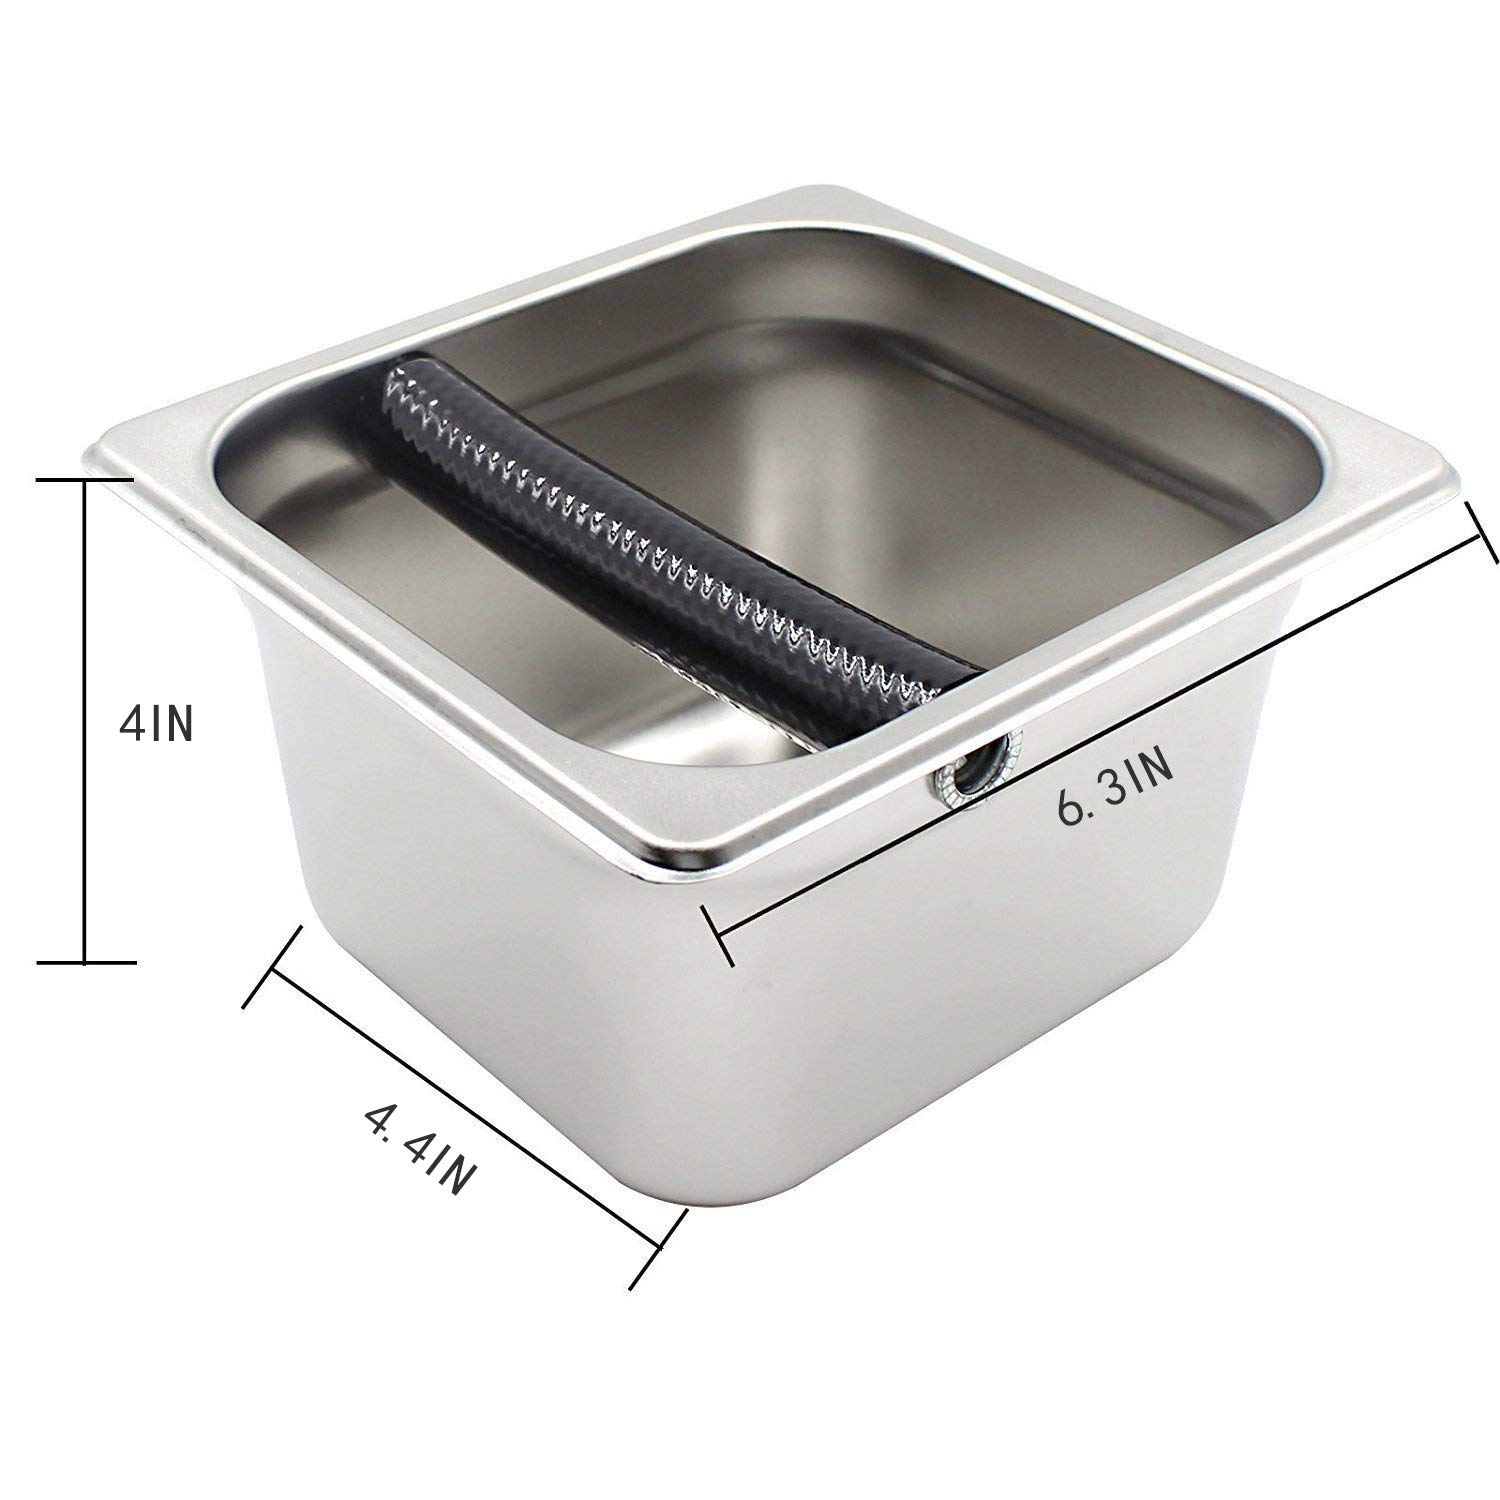 Knock Box Coffee Espresso Stainless Steel Espresso Recycle Dump Bin Rubber Bar Durable Tube Grind 6.3 x 6.89 x 3.7 inch